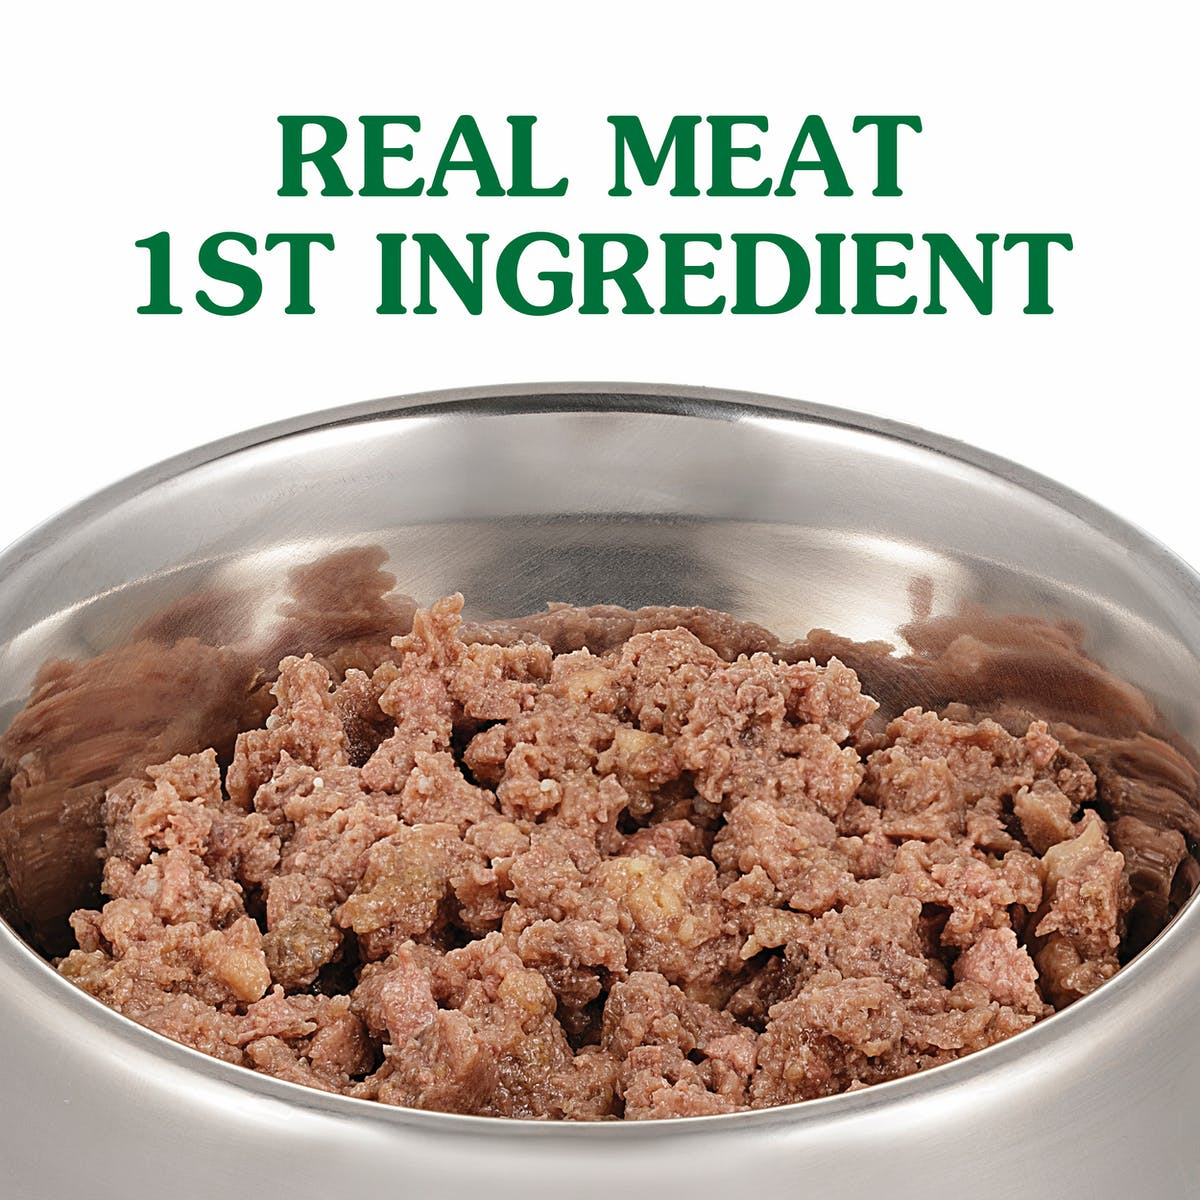 Nature's Gift   Beef & Cheese   Wet dog food   Left of pack